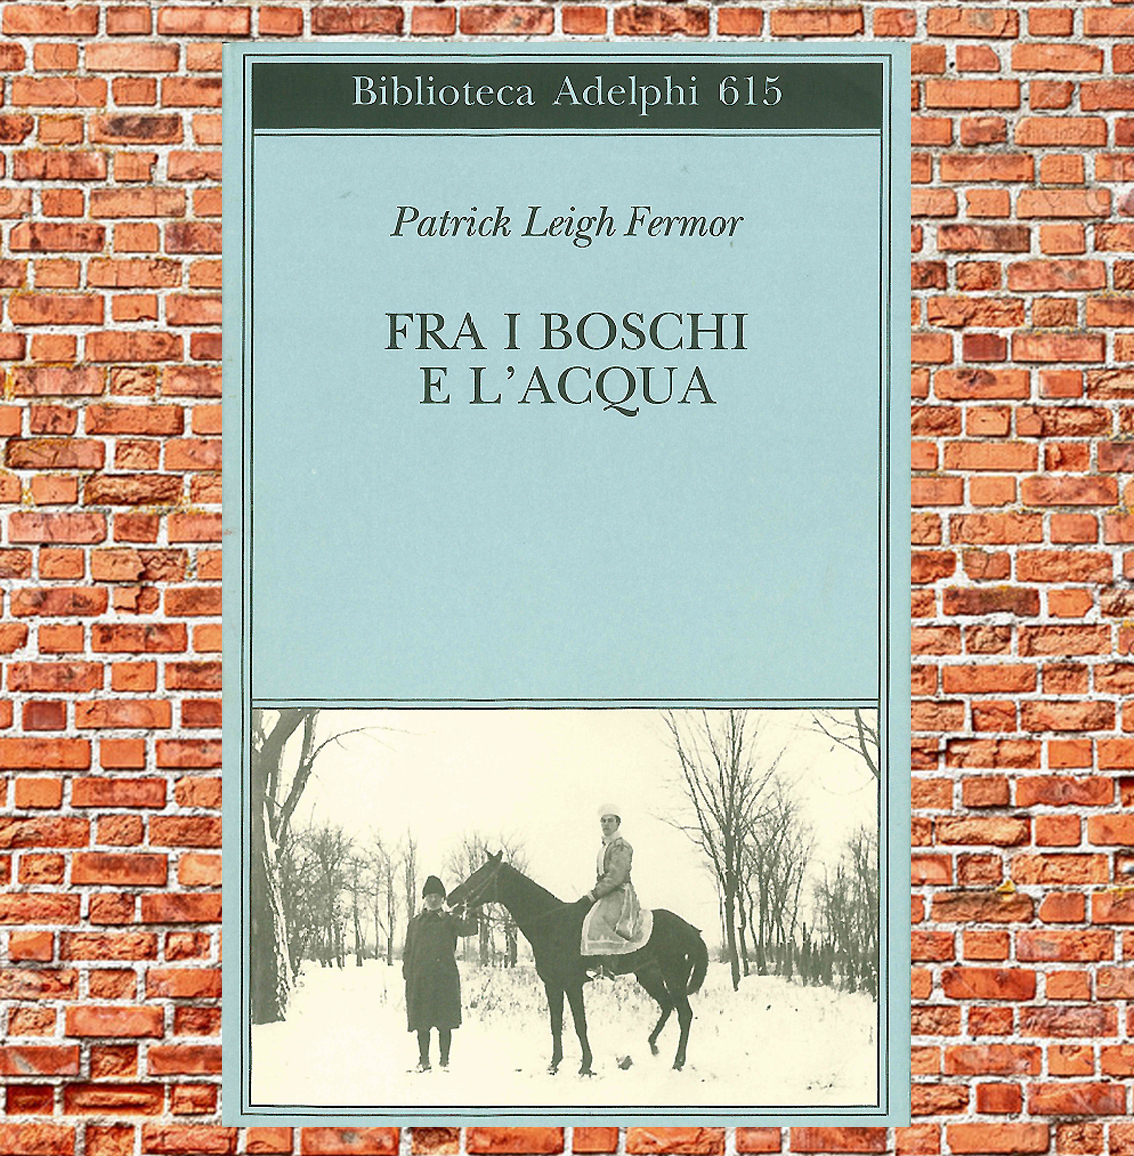 images/stories/libri/Fra_Boschi_e_Acqua_PatrickLeighFermor.jpg